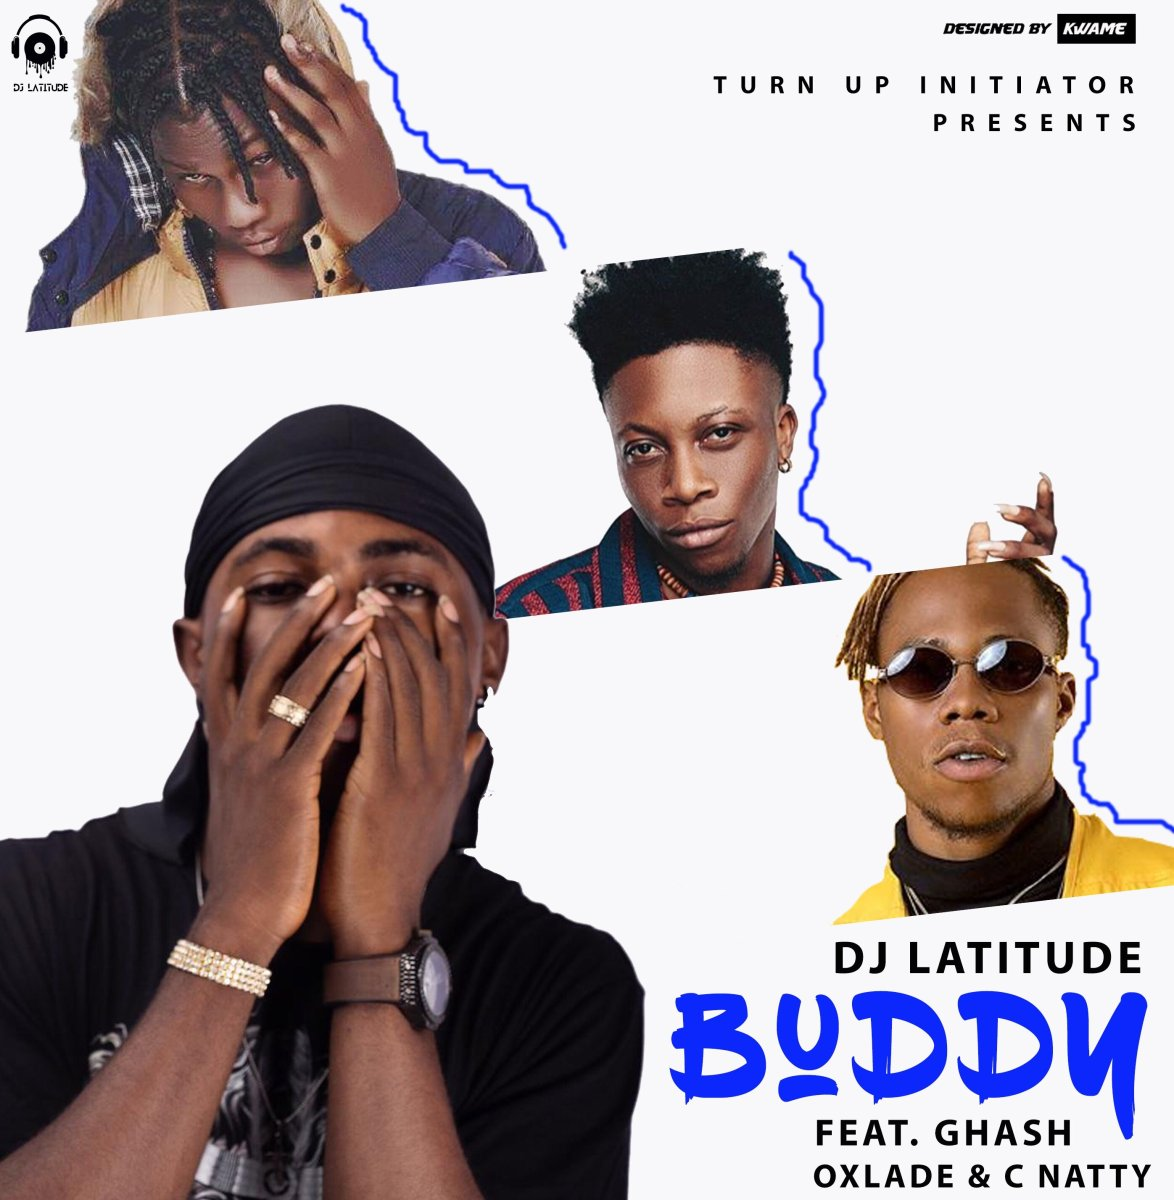 MP3: DJ Latitude ft. Ghash, Cnatty & Oxlade - Buddy | @Dj_Latitude